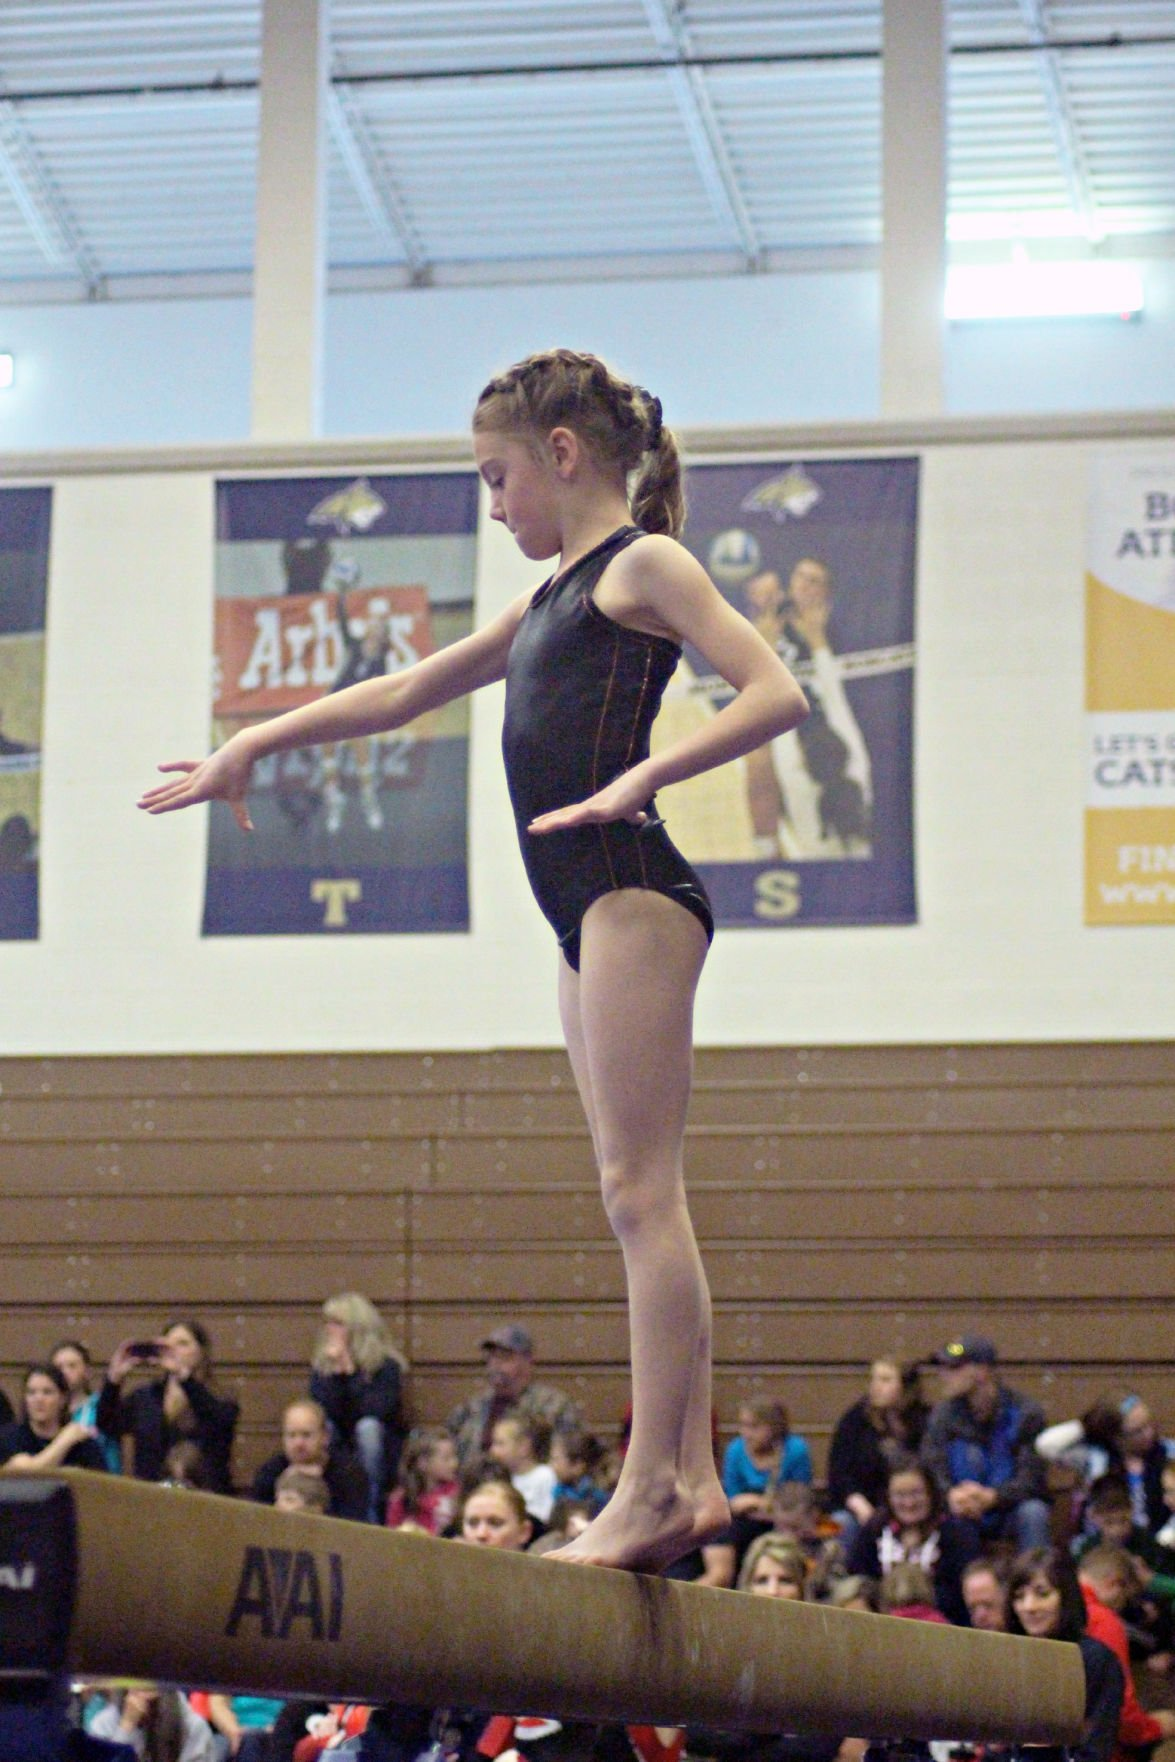 Top tumblers: Velocity Gymnastics takes championship title at state tournament